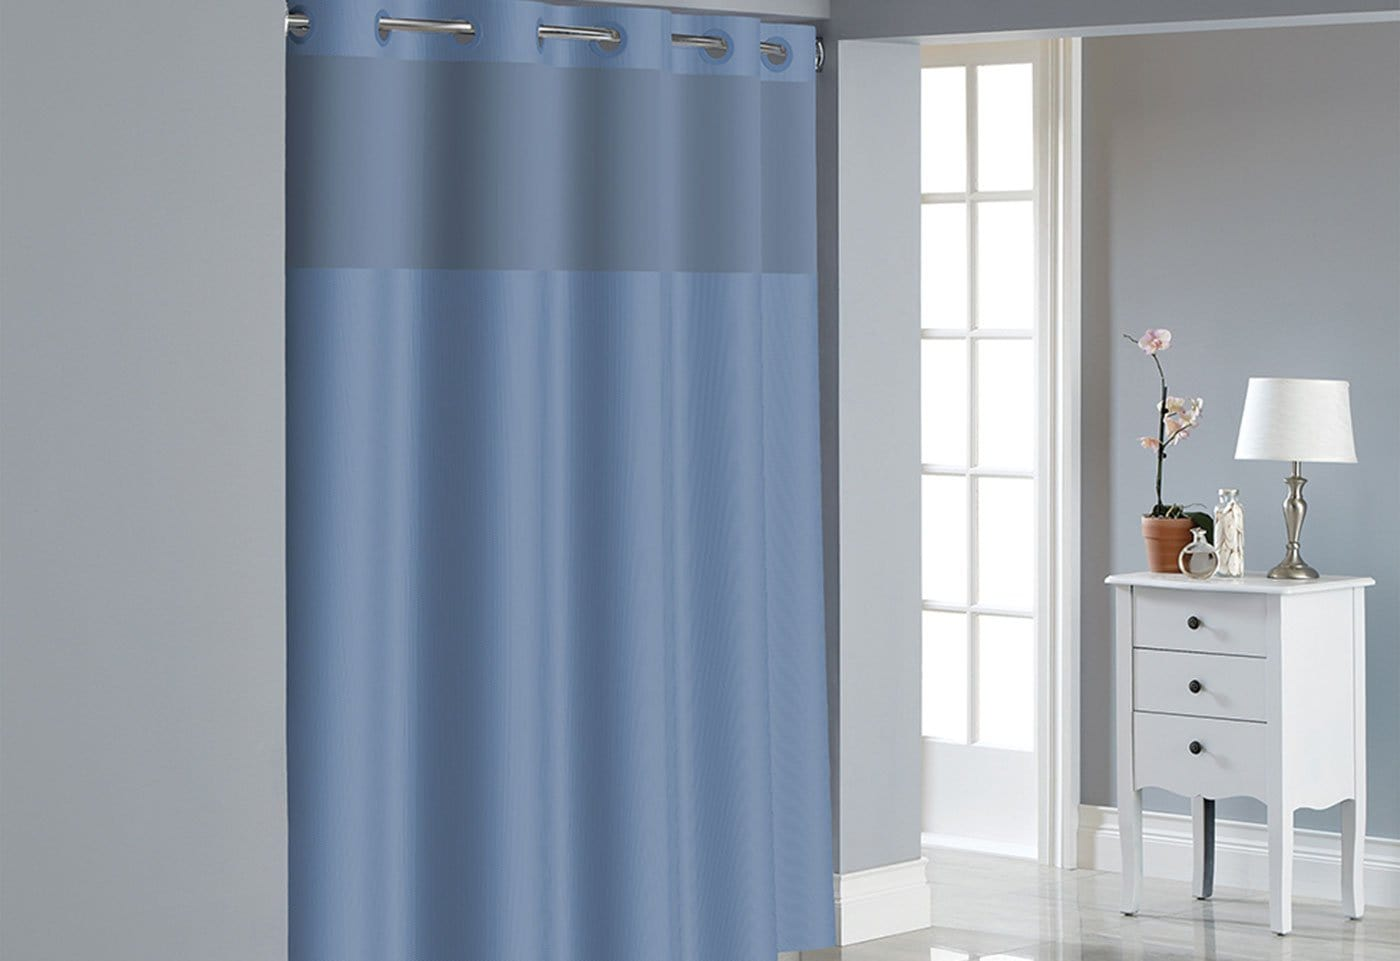 Hookless® Dobby Texture Shower Curtain Includes Snap On/Off Replaceable Liner - 71 x 74 / Midnight Blue